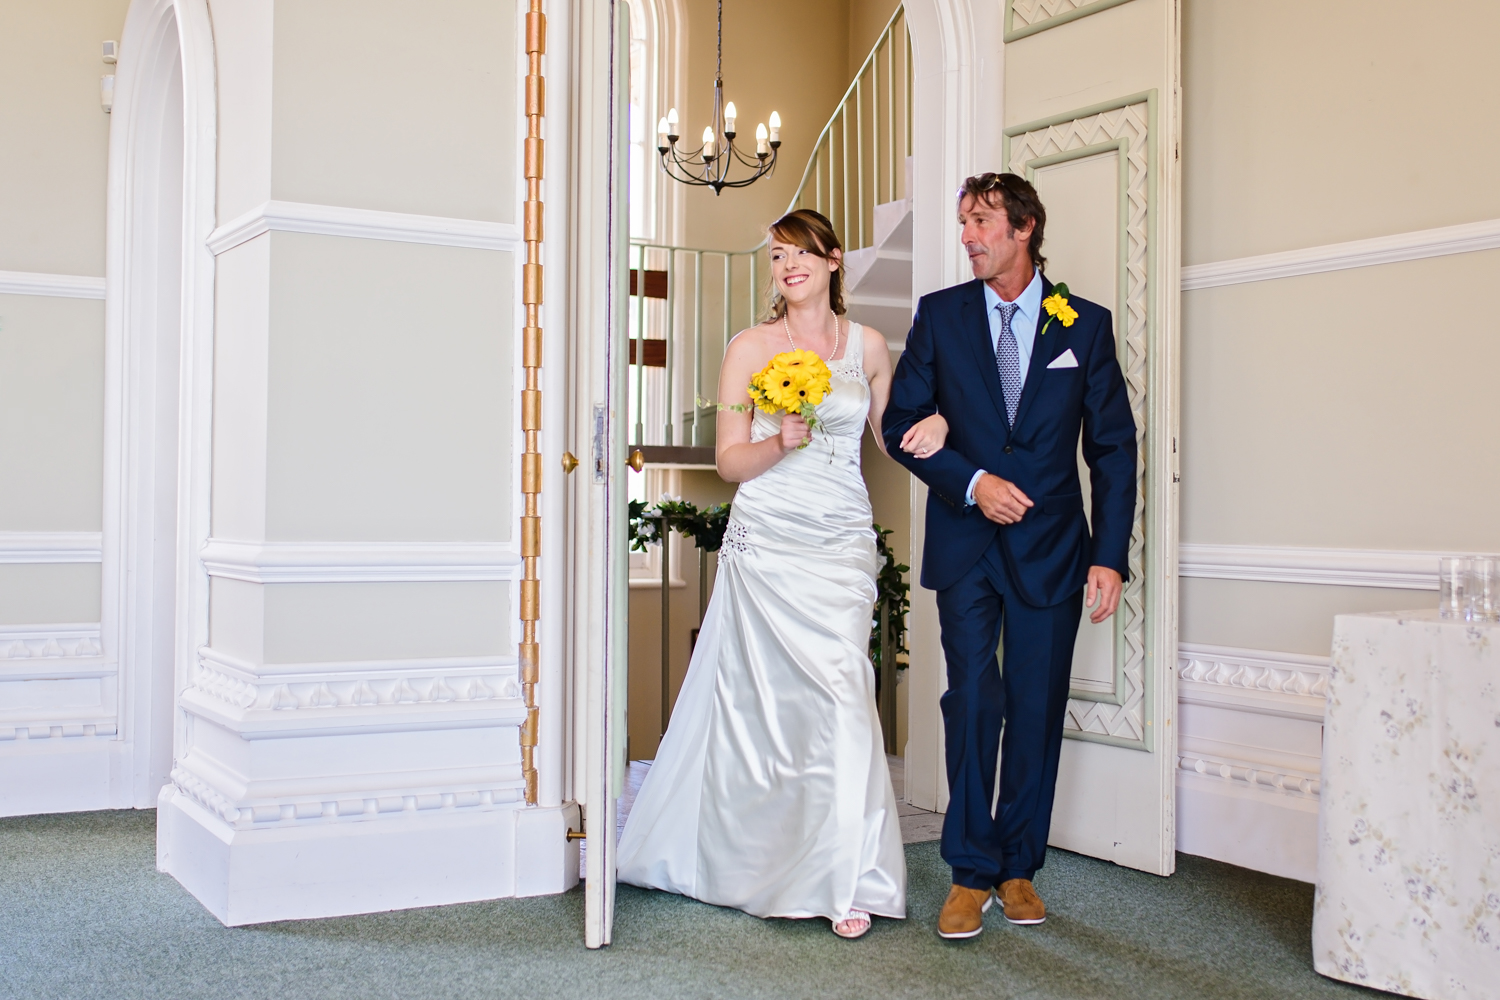 Dad walking bride down the aisle | Arundel | Sussex Photographer